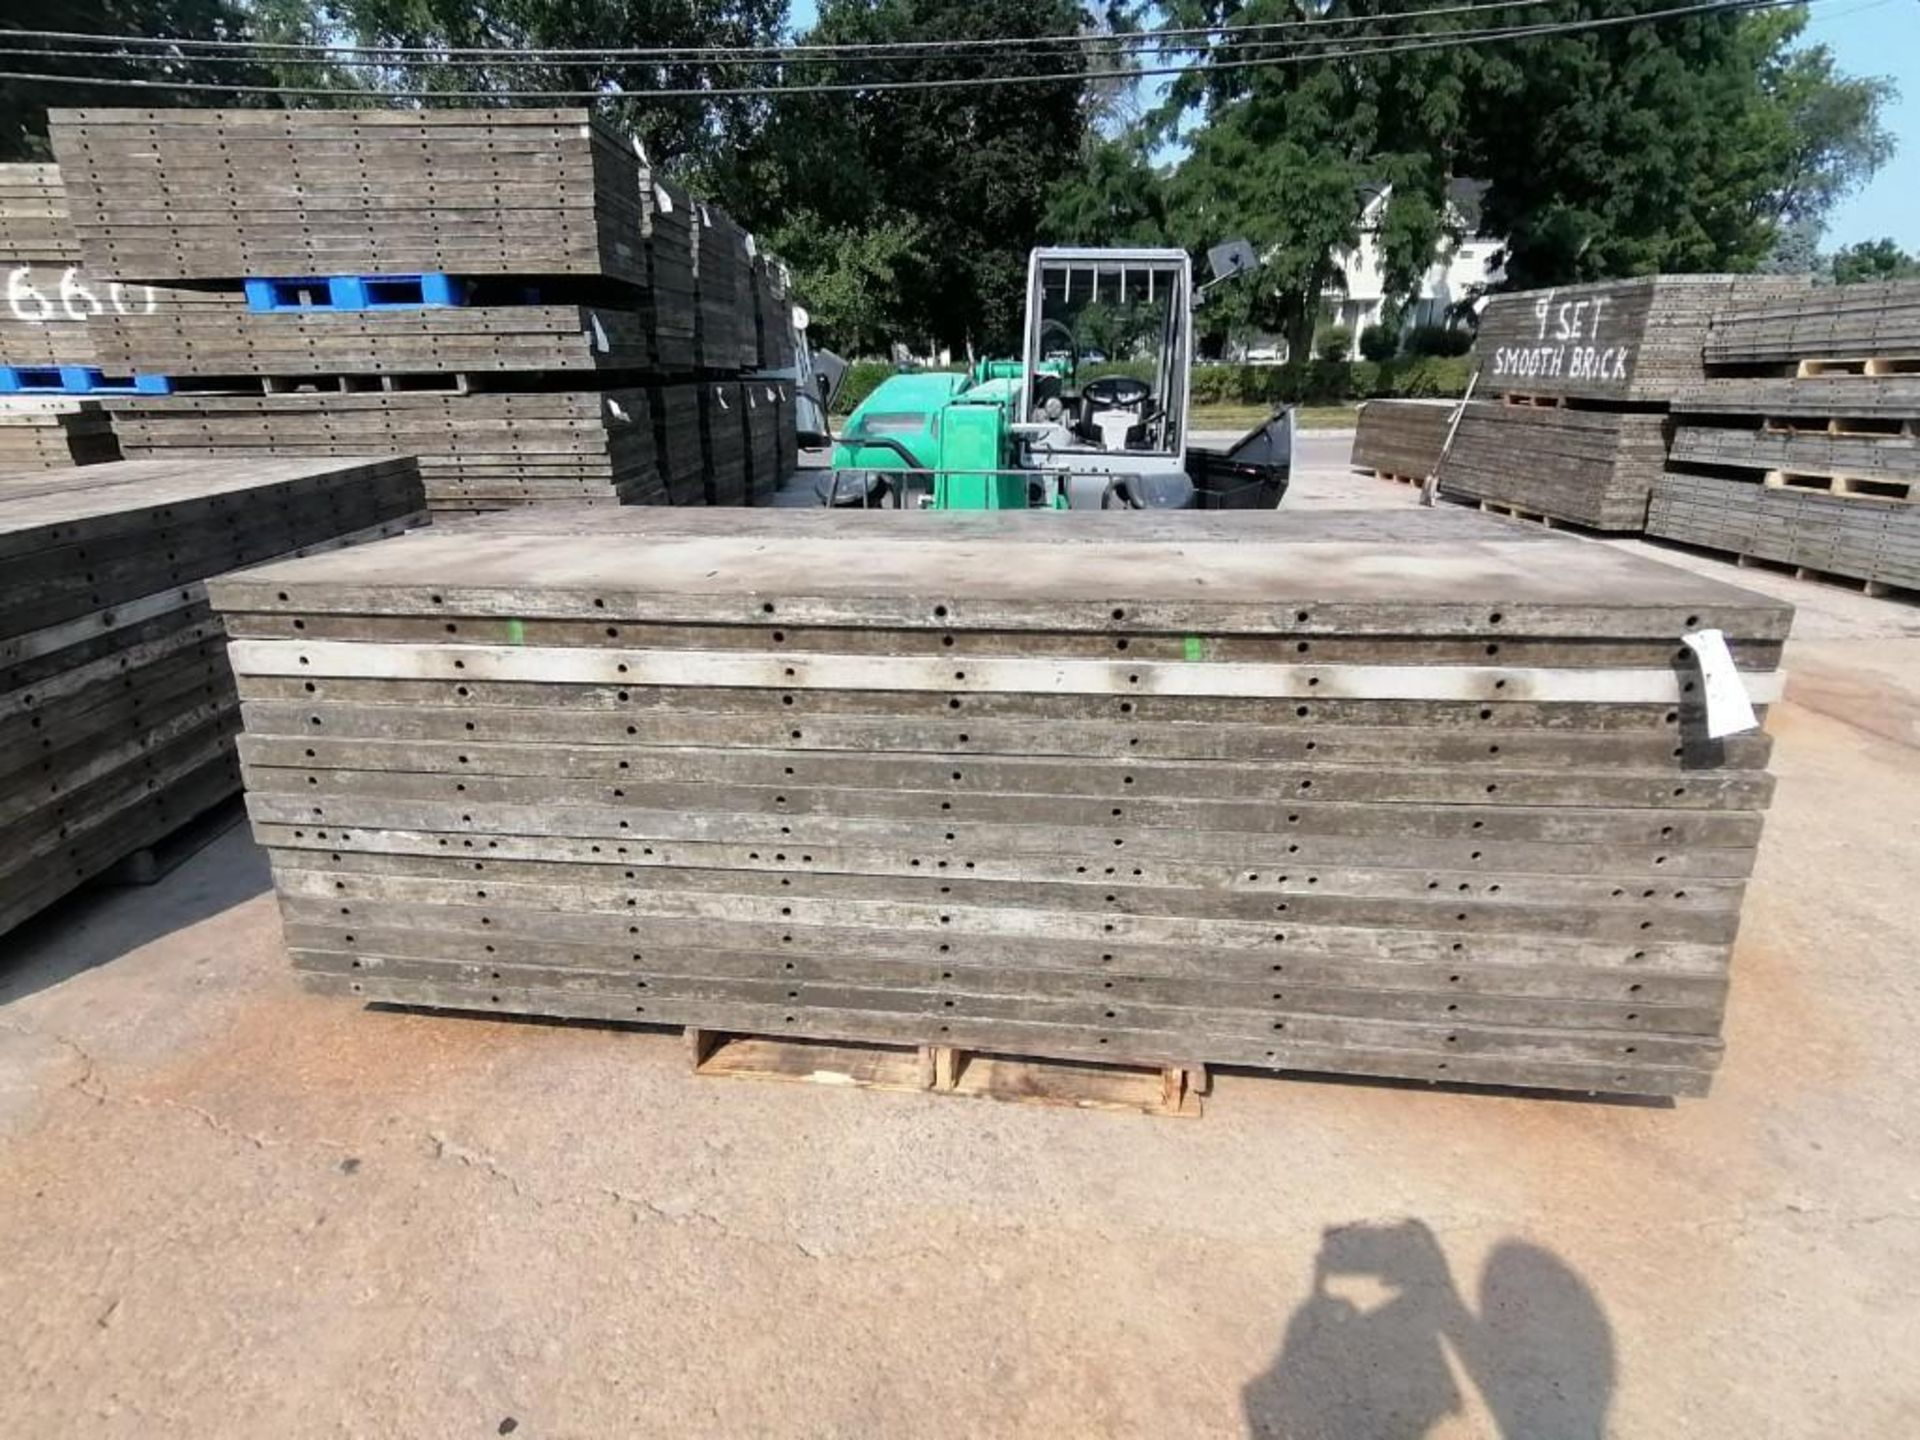 Lot 149 - (30) 2' x 9' Wall-Ties Aluminum Concrete Forms, Laydowns, Smooth 6-12 Hole Pattern. Located at 301 E